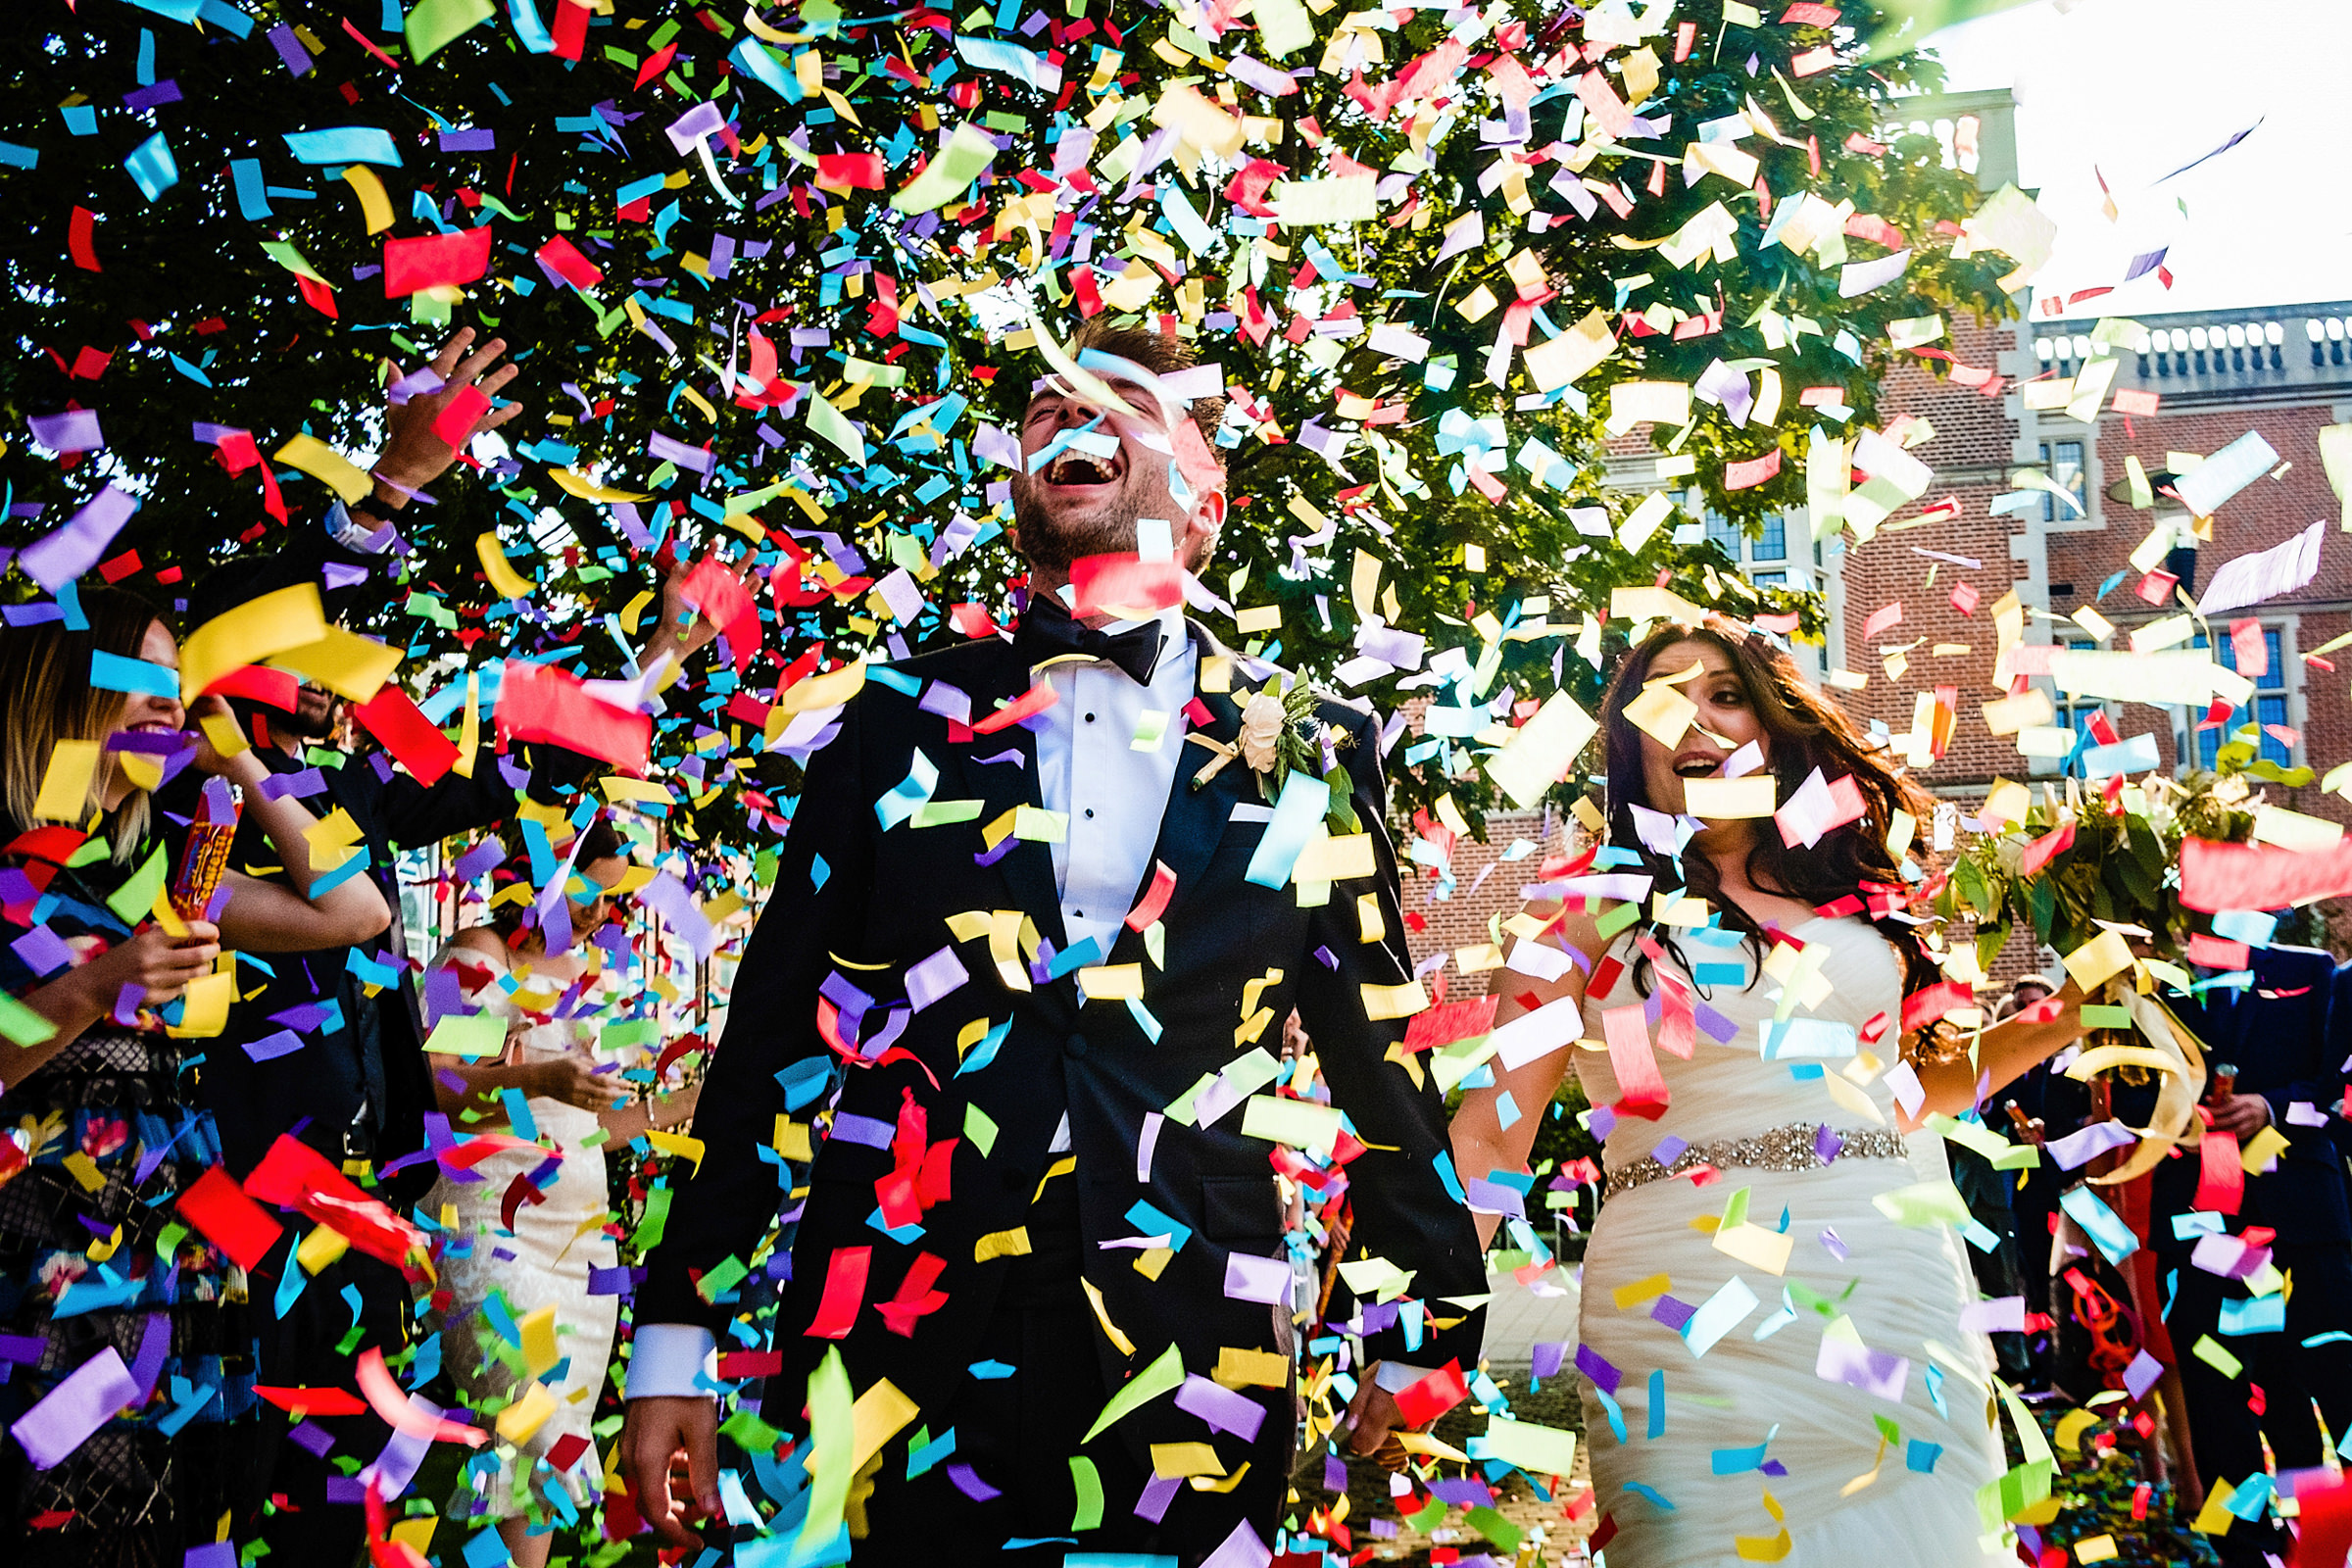 Rainstorm of confetti on couple - photo by Emma + Rich